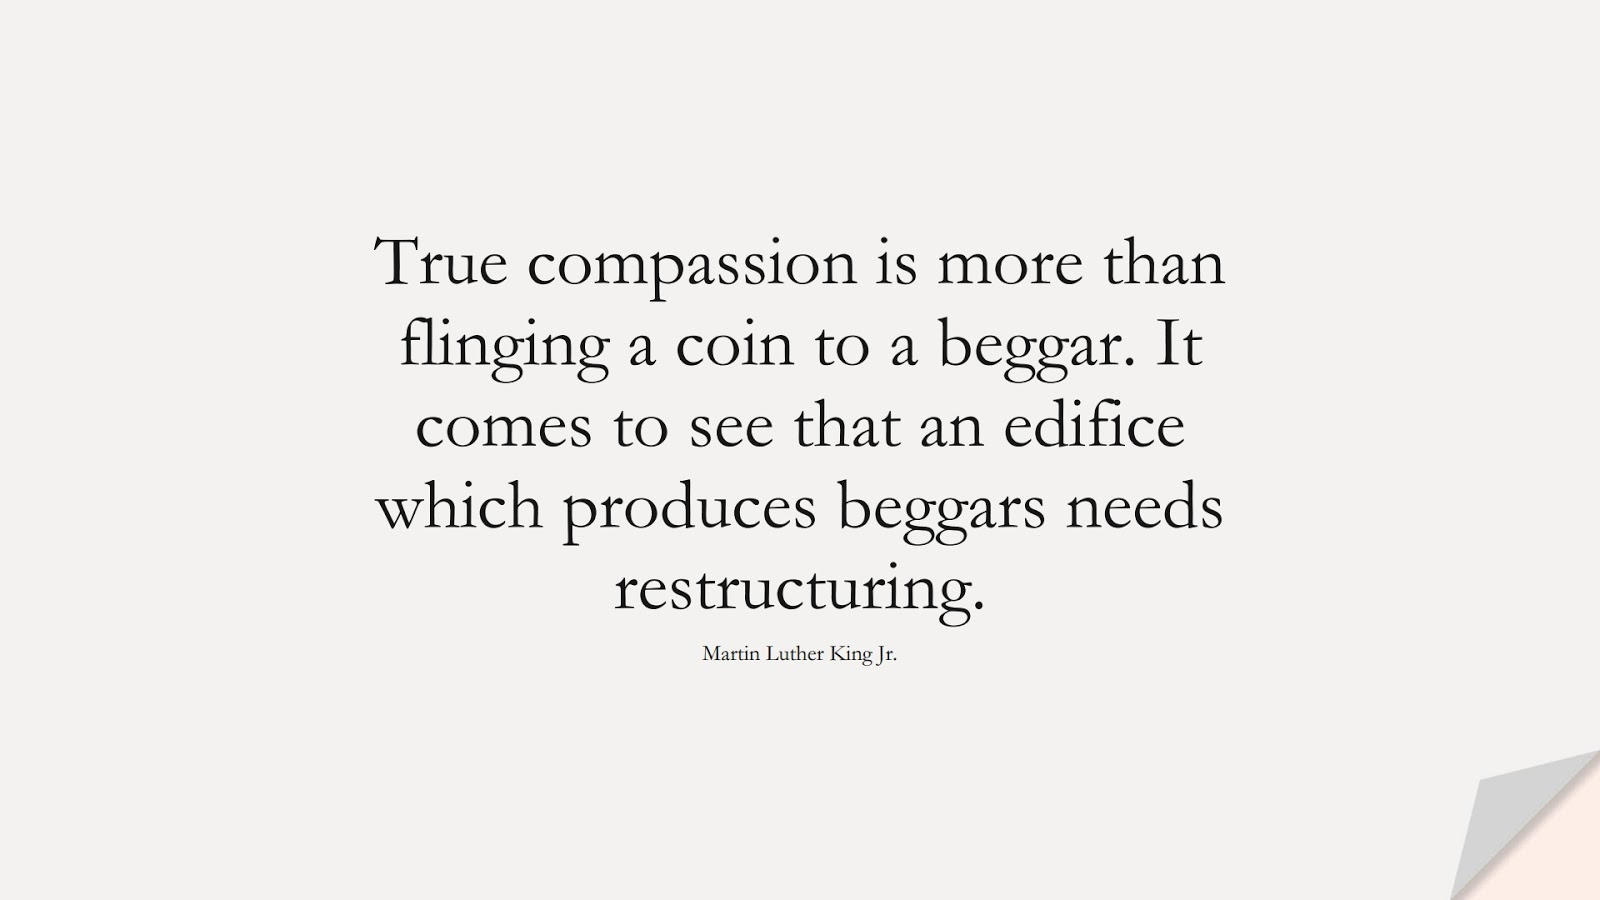 True compassion is more than flinging a coin to a beggar. It comes to see that an edifice which produces beggars needs restructuring. (Martin Luther King Jr.);  #MartinLutherKingJrQuotes